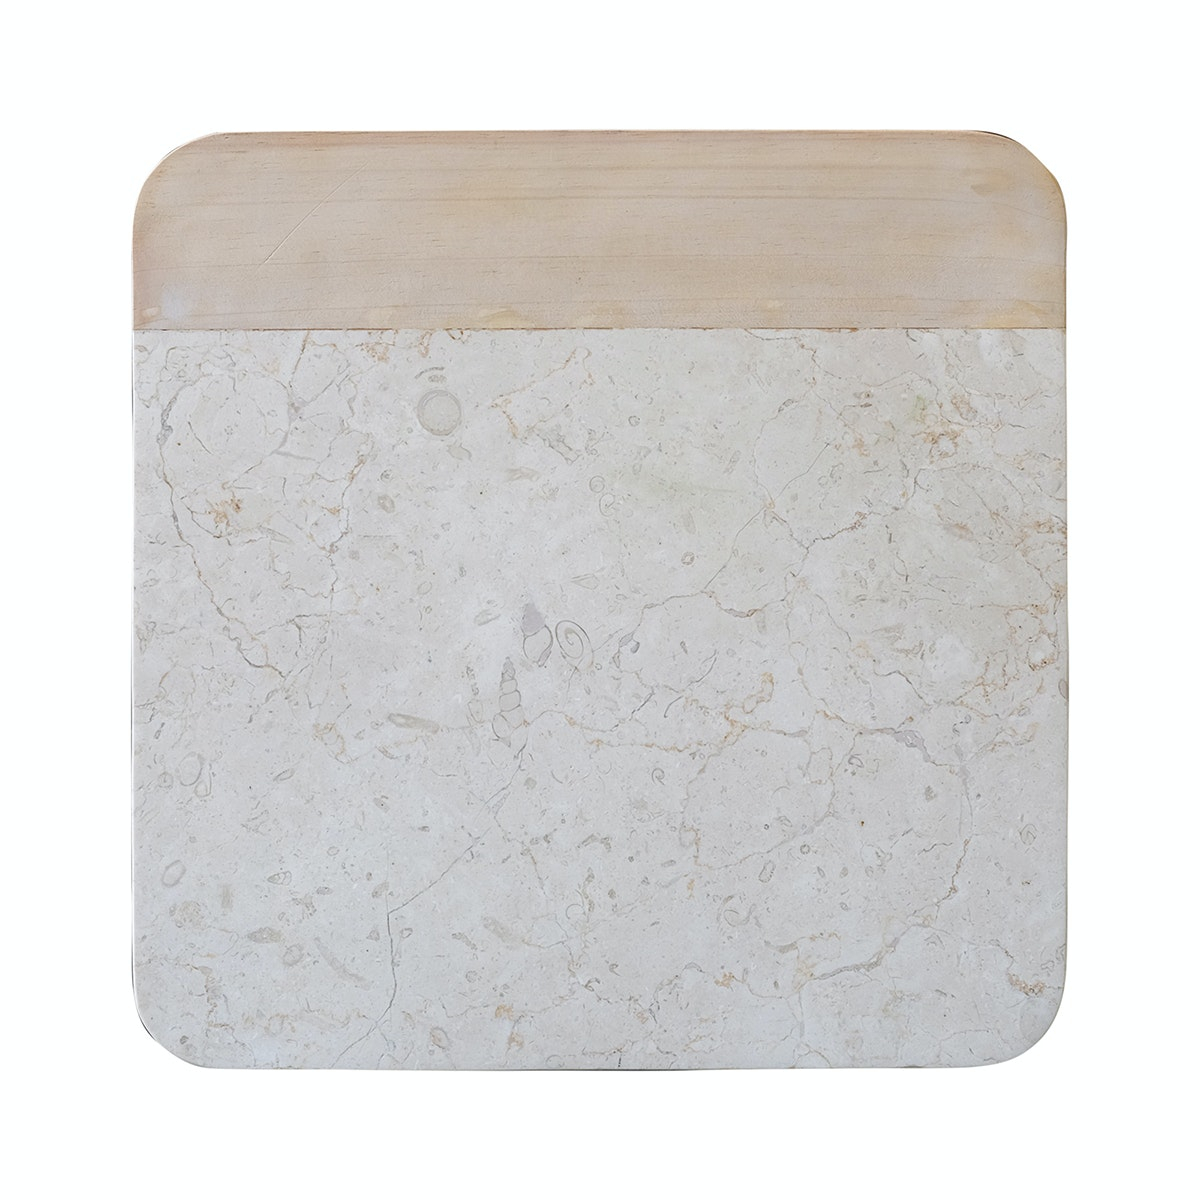 Vie For Living Cutting Board Marble 1154 (S)